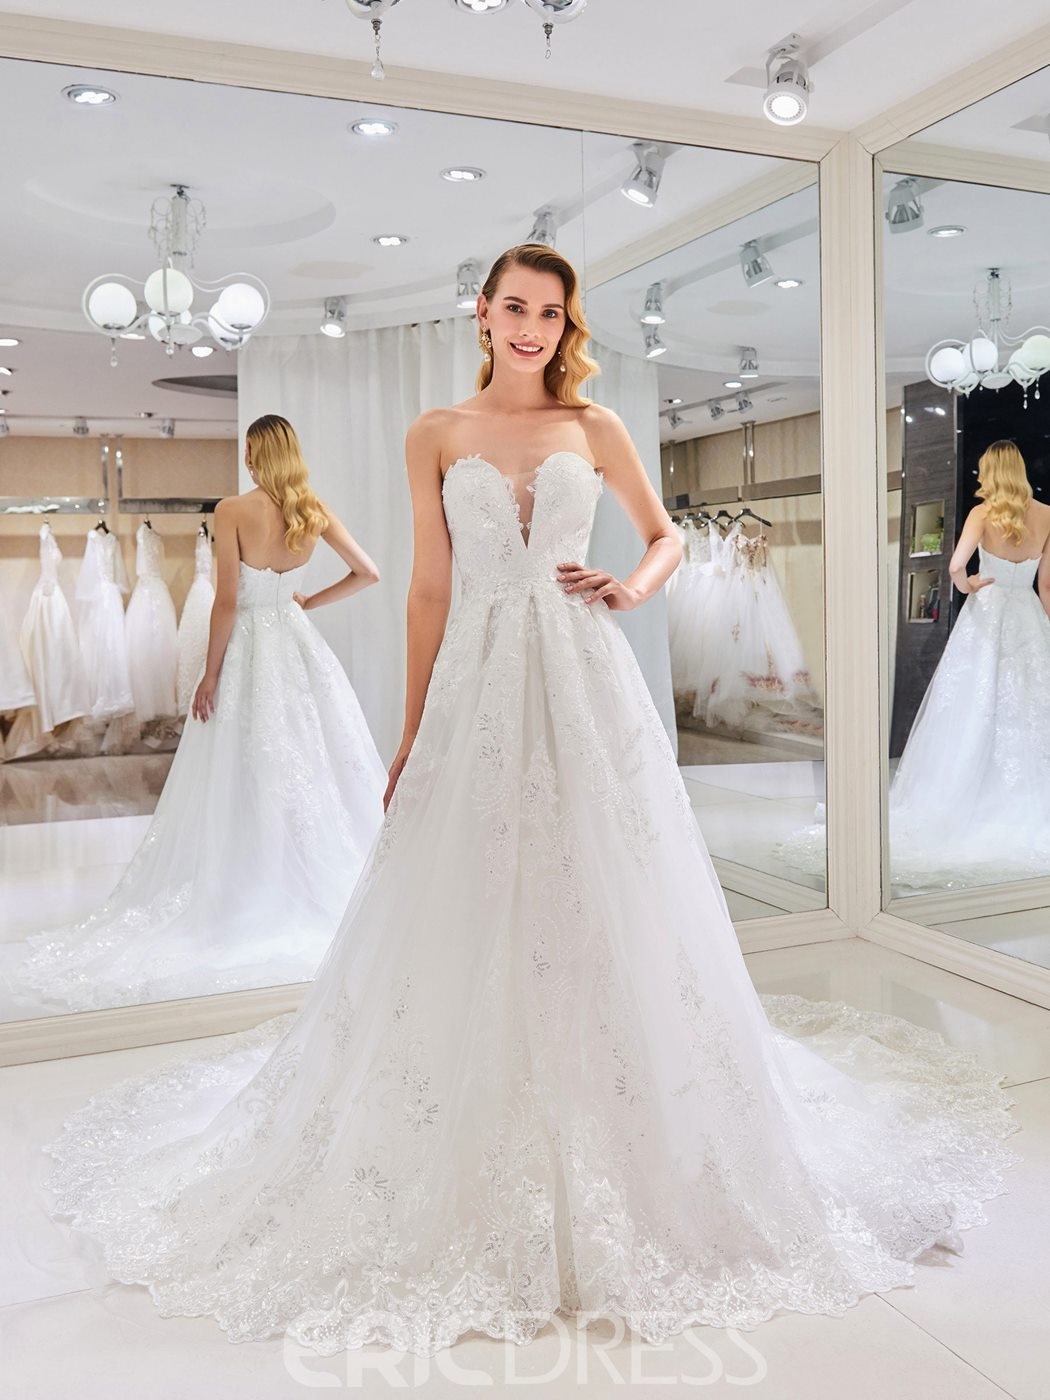 Ericdress Sweetheart Ball Gown Wedding Dress 13302778 - Ericdress.com